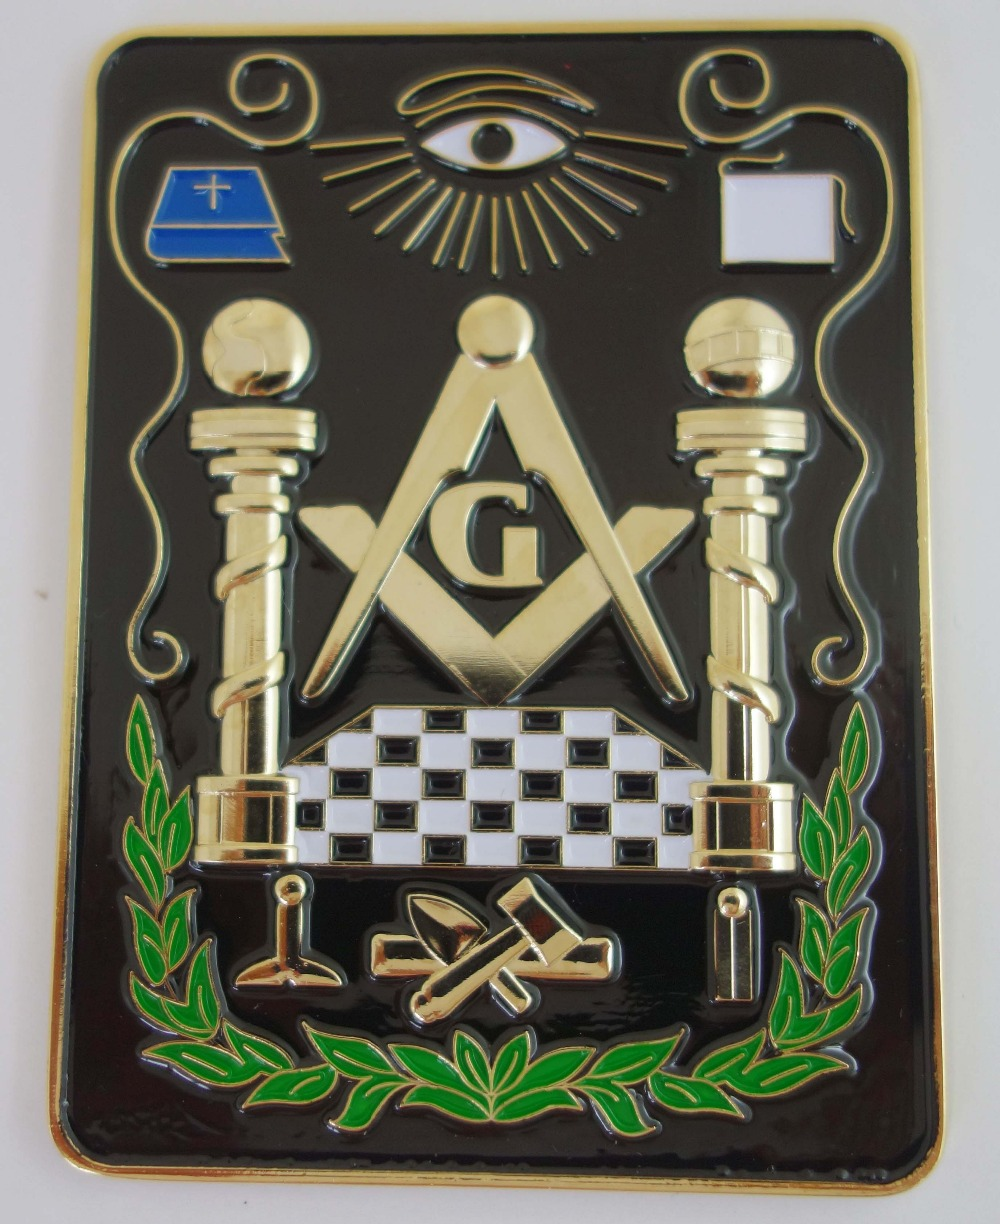 online buy wholesale masonic lapel pins from china masonic lapel pins wholesalers